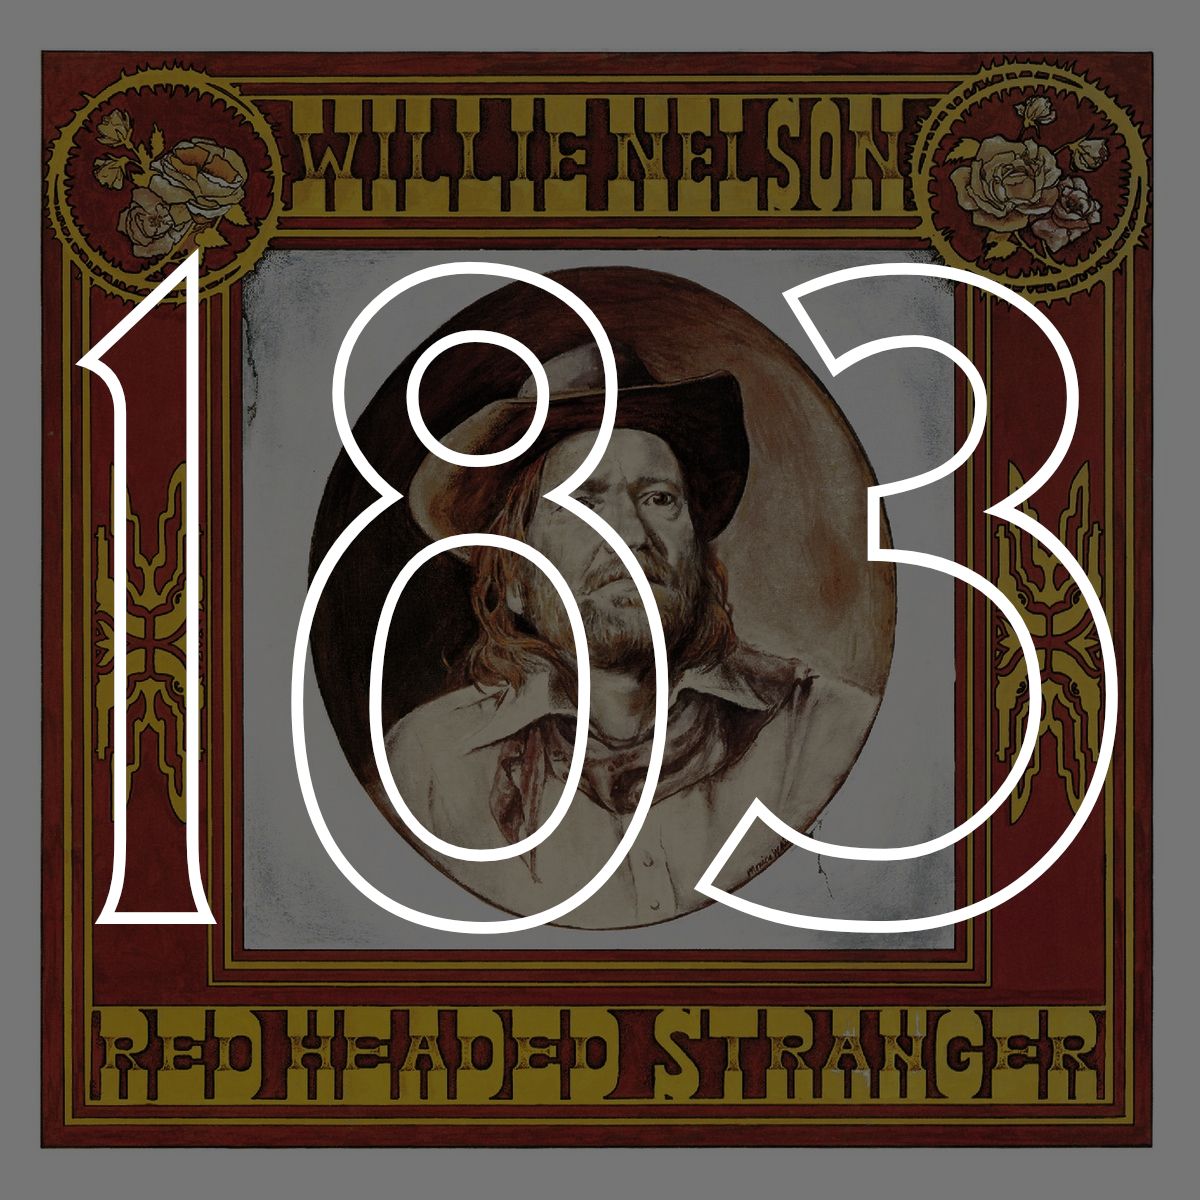 183 Red Headed Stranger.jpg